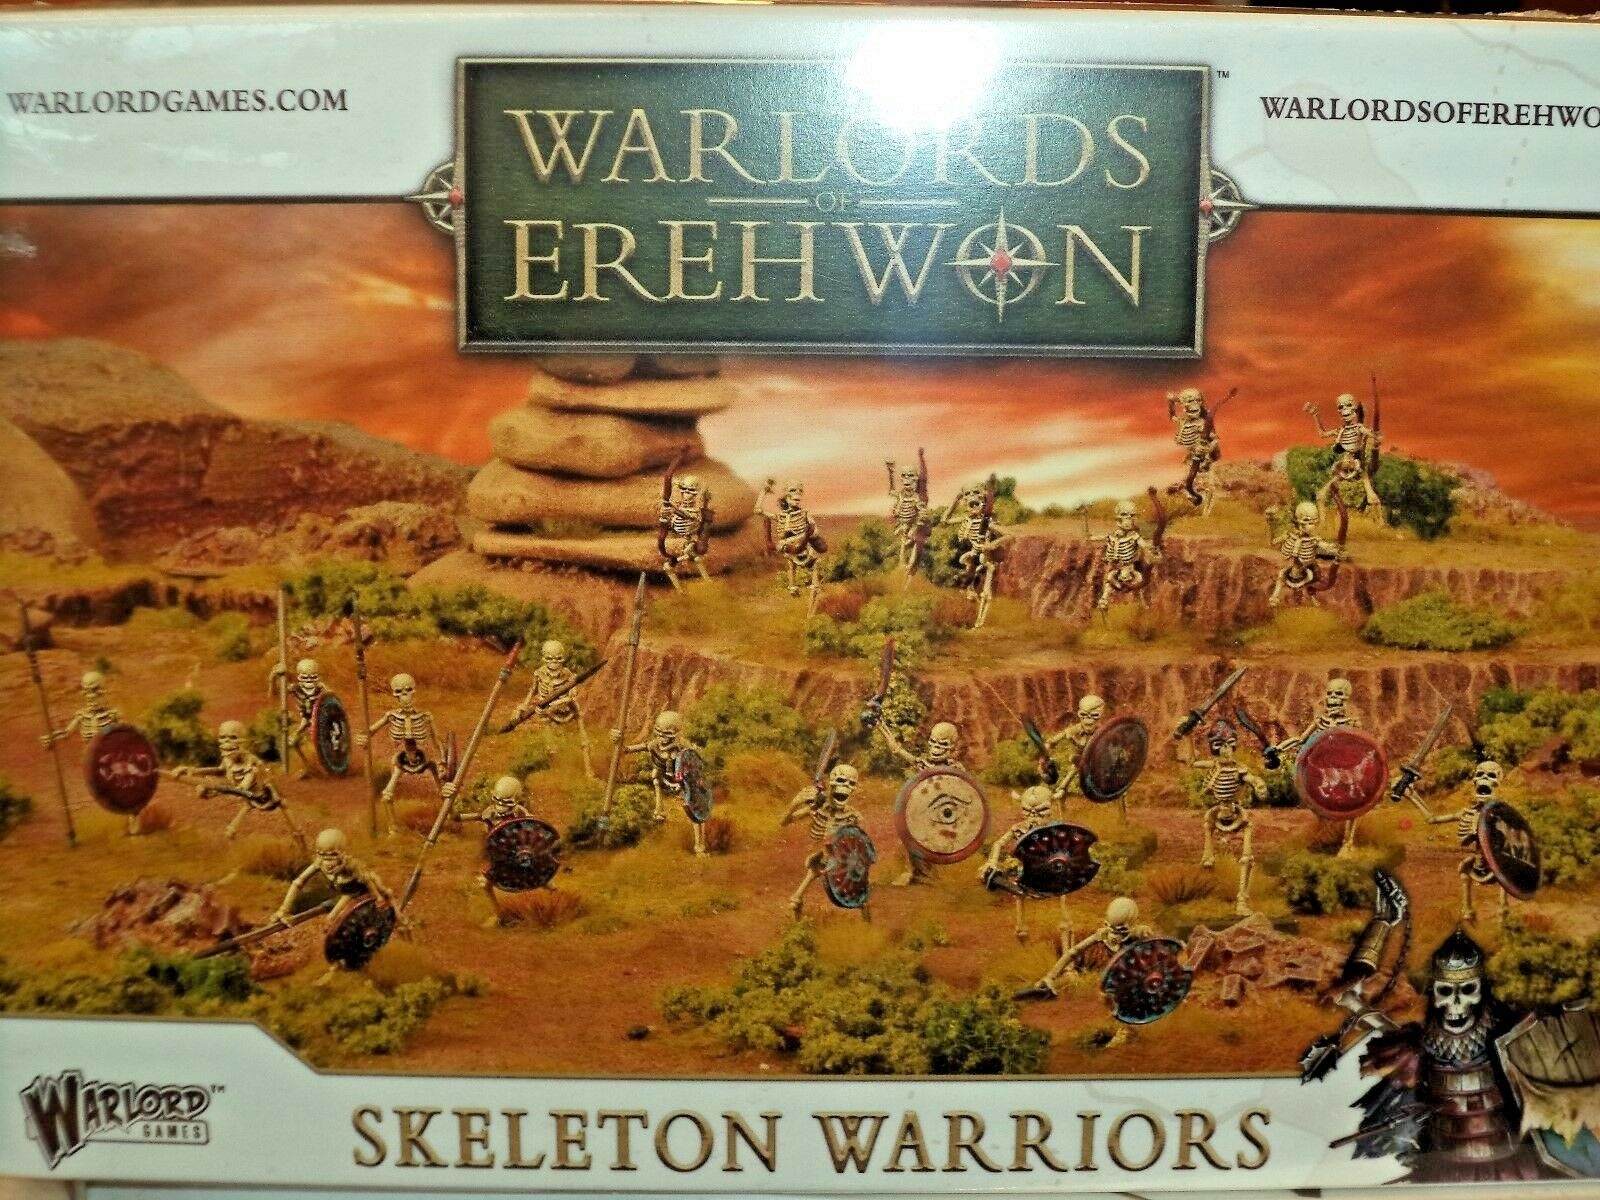 Skeleton Warriors - Warlords of Erehwon Models Warlord Games New